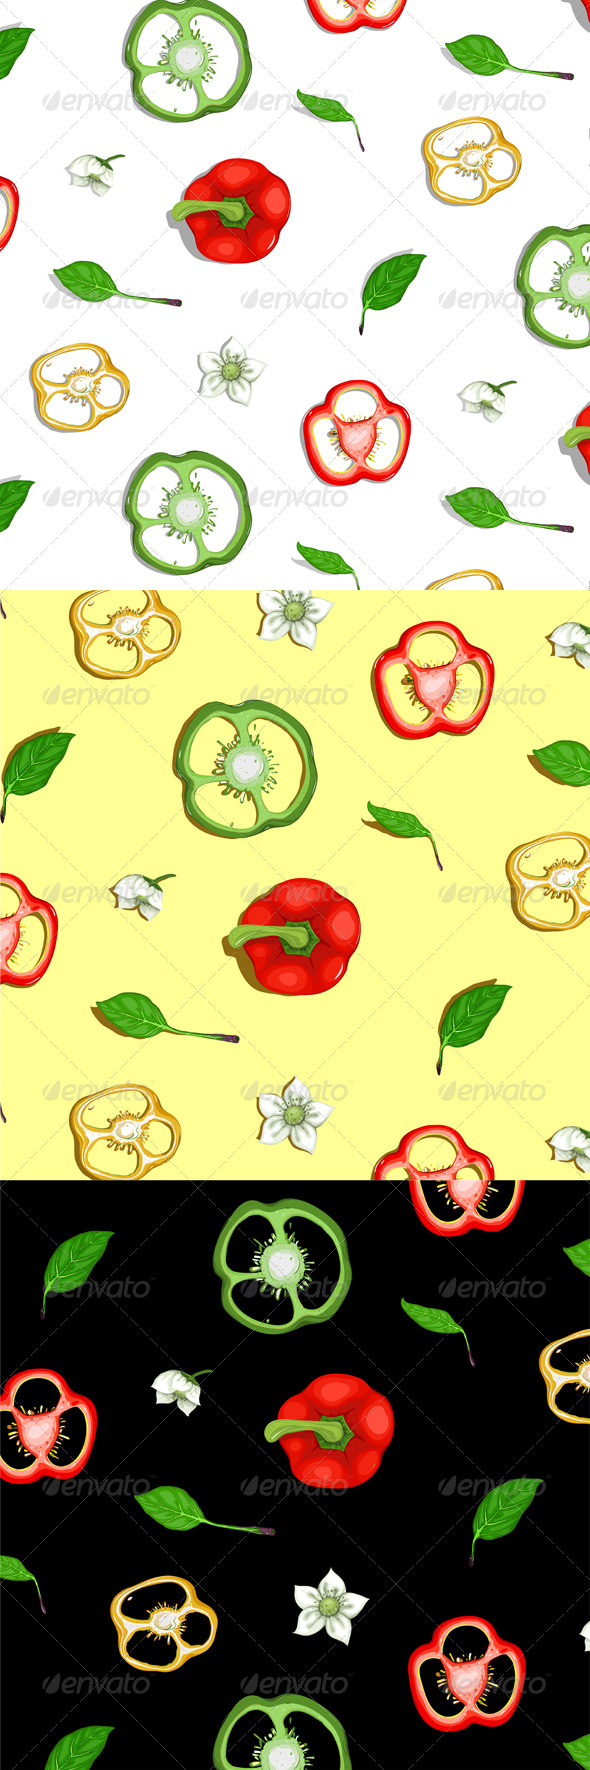 GraphicRiver Paprika Sweet Pepper Seamless Background 4350186